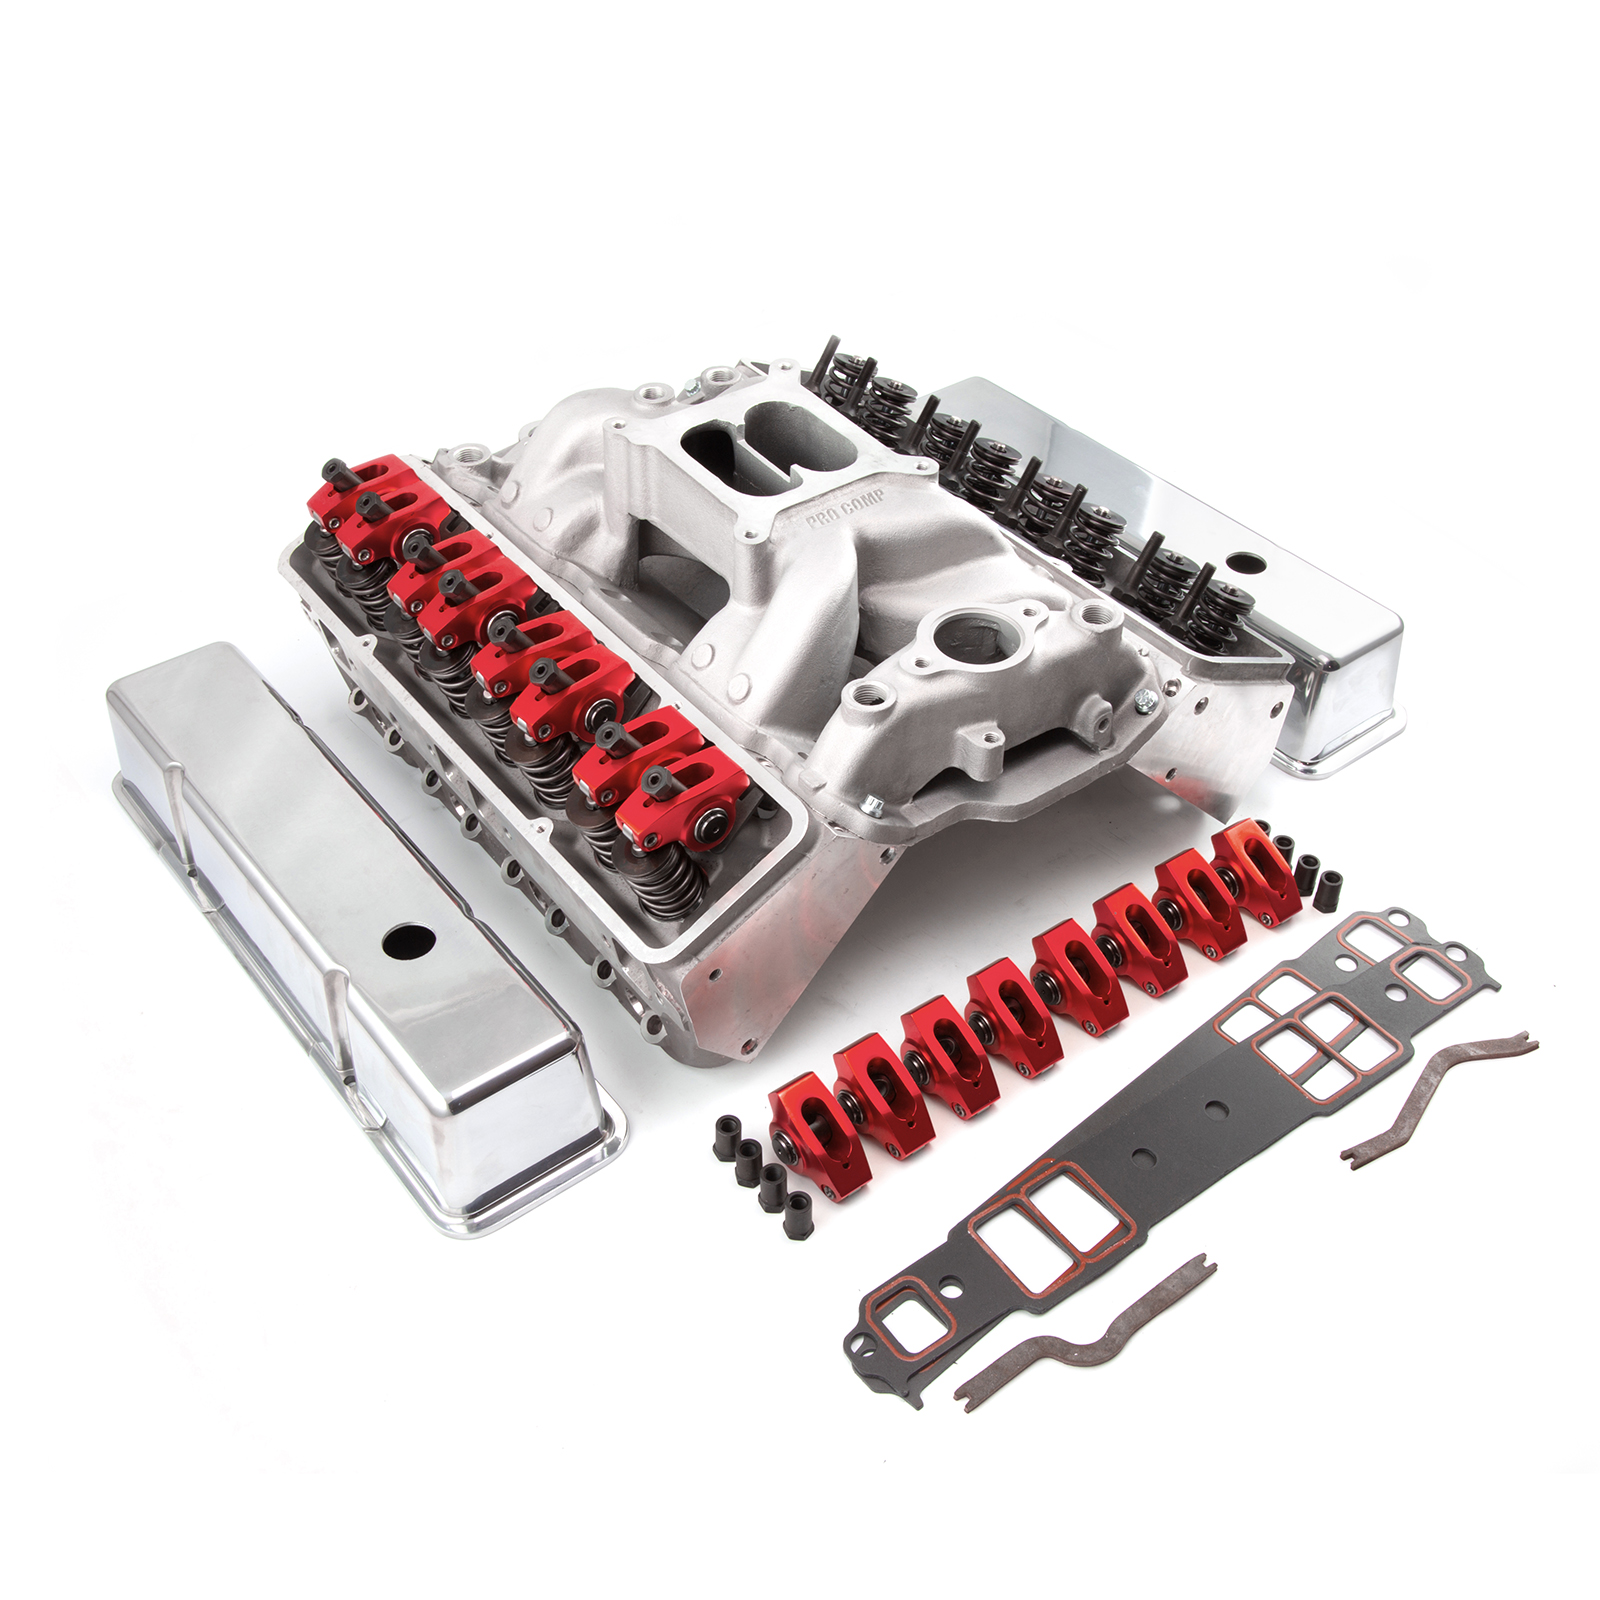 Details about Chevy SBC 350 Angle Plug Solid FT Cylinder Head Top End  Engine Combo Kit